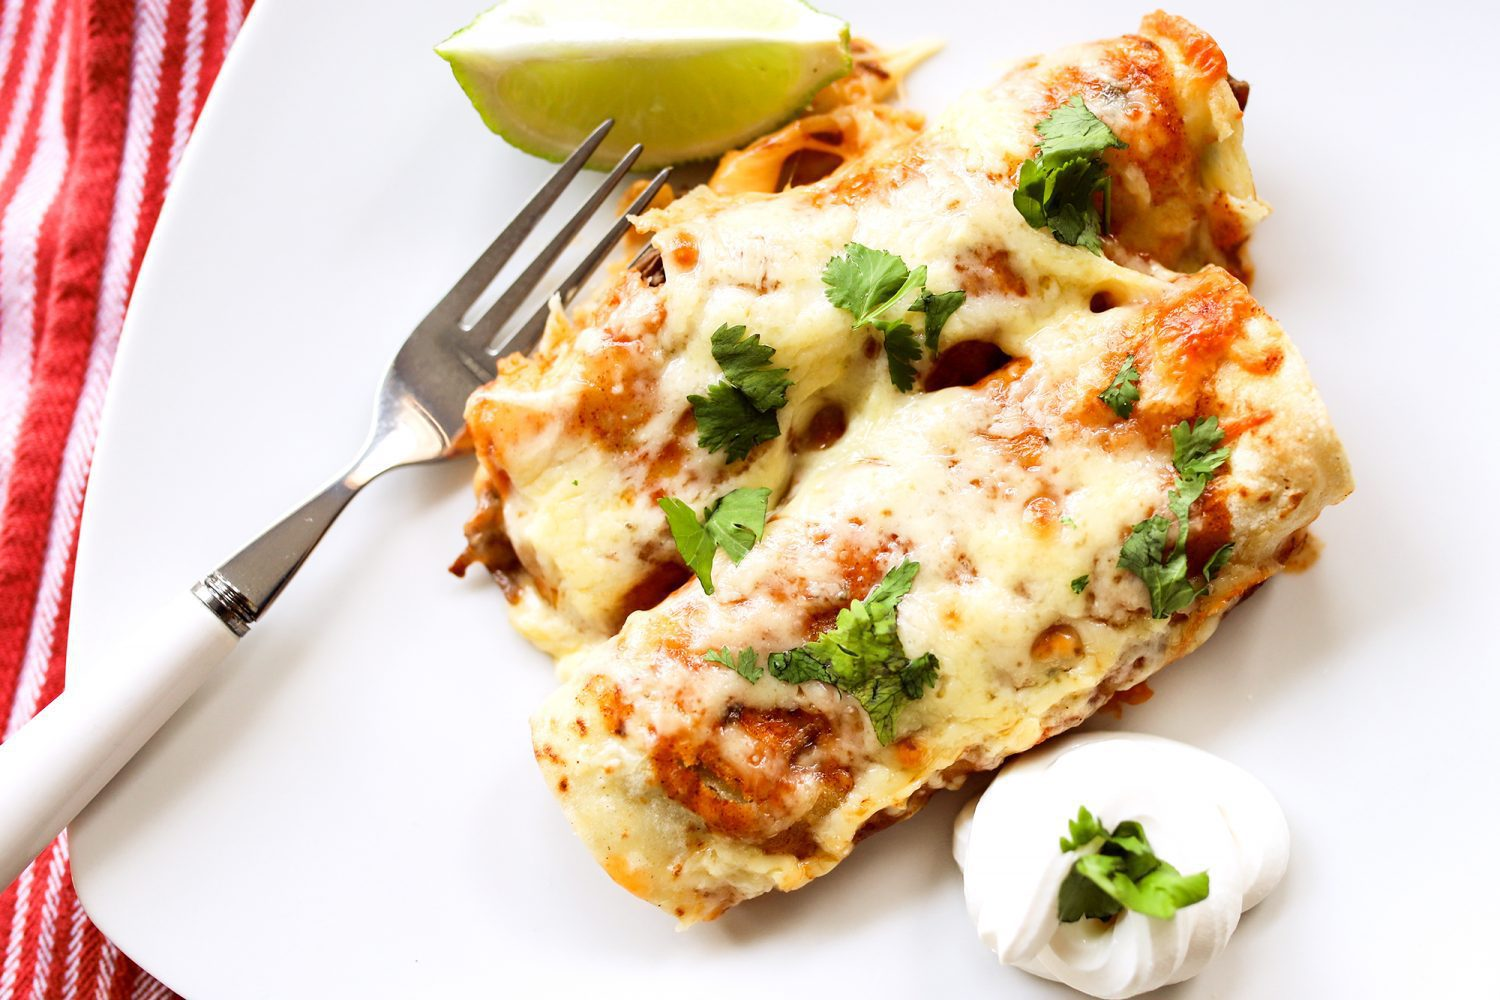 enchiladas on a plate with a fork